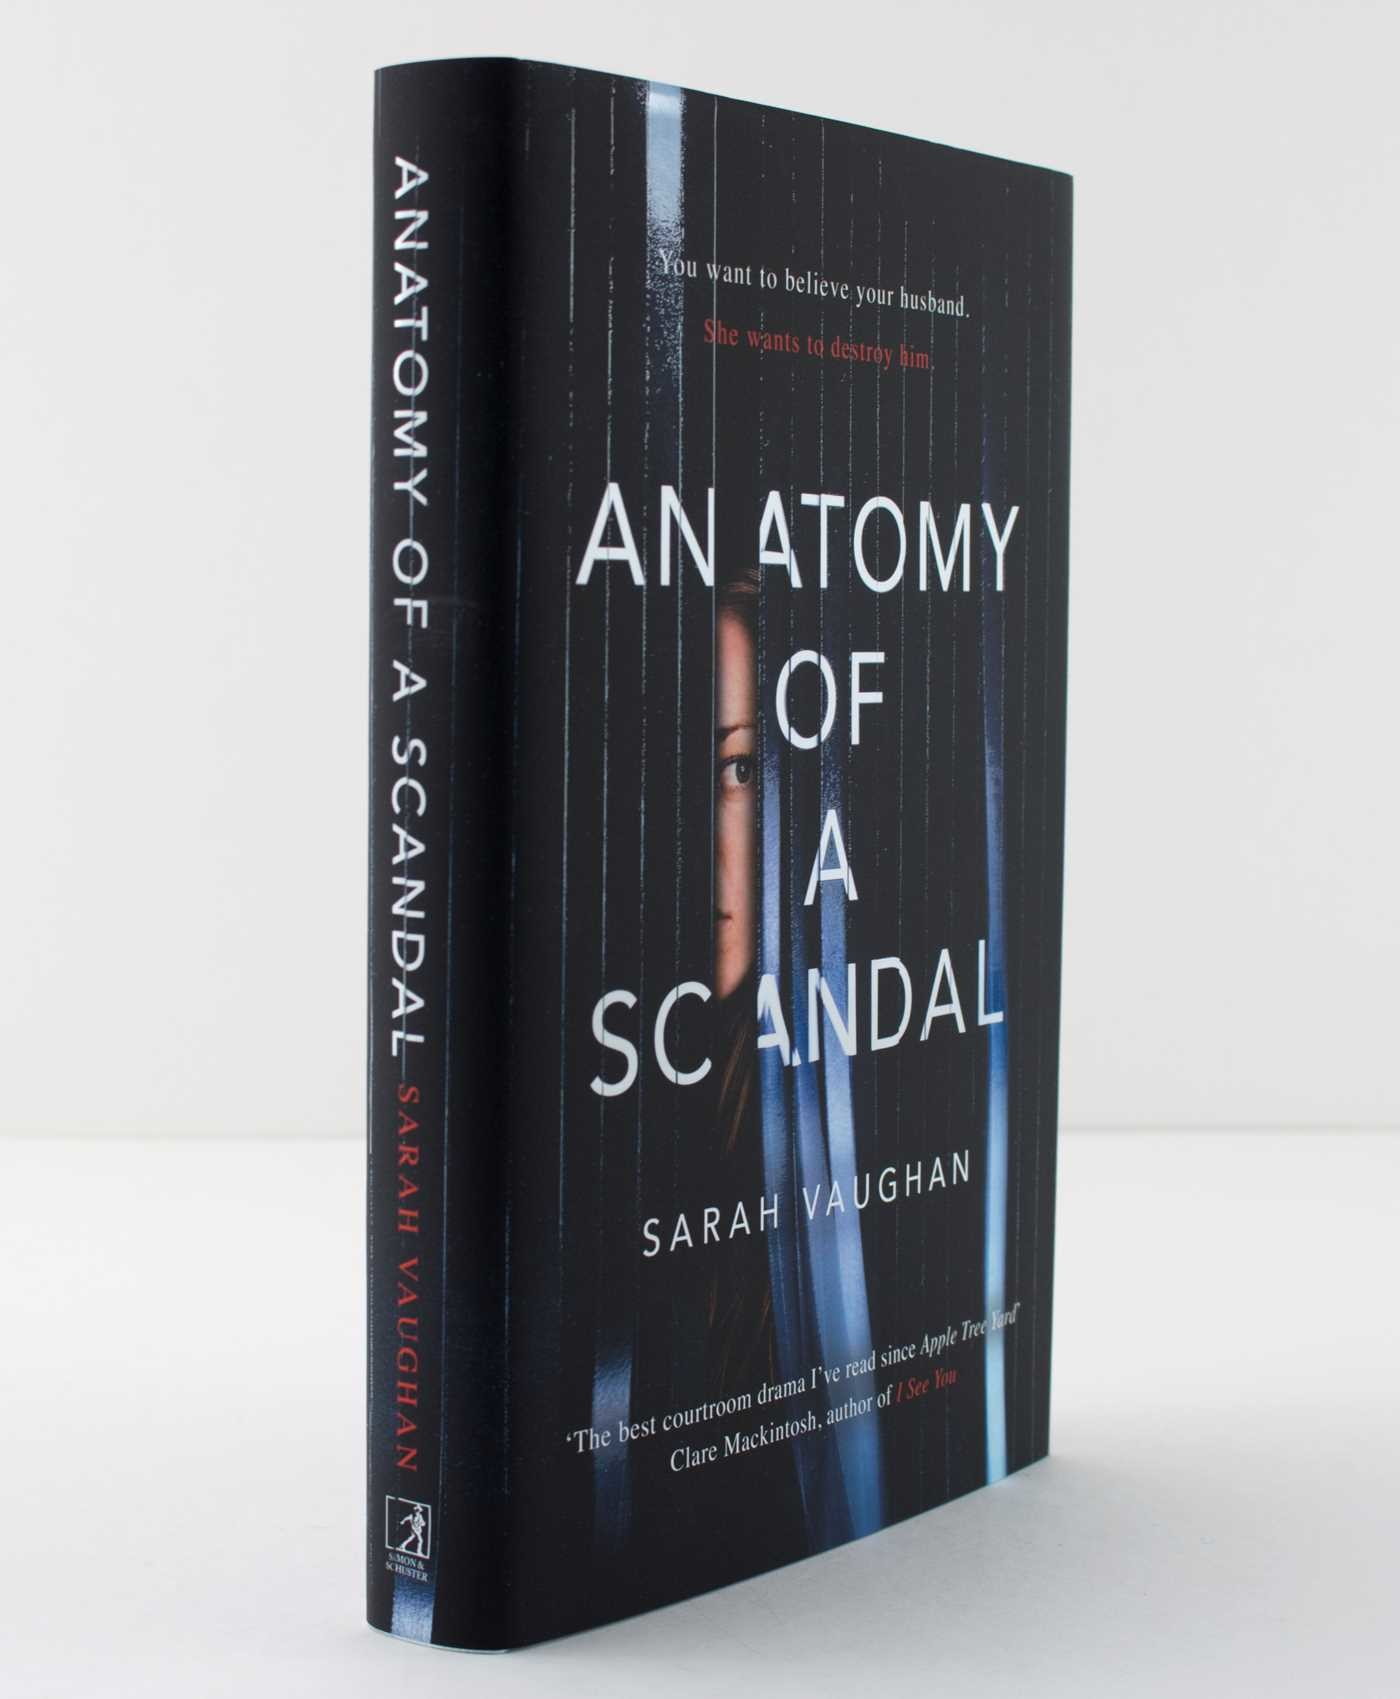 Anatomy of a scandal 9781471164996.in07